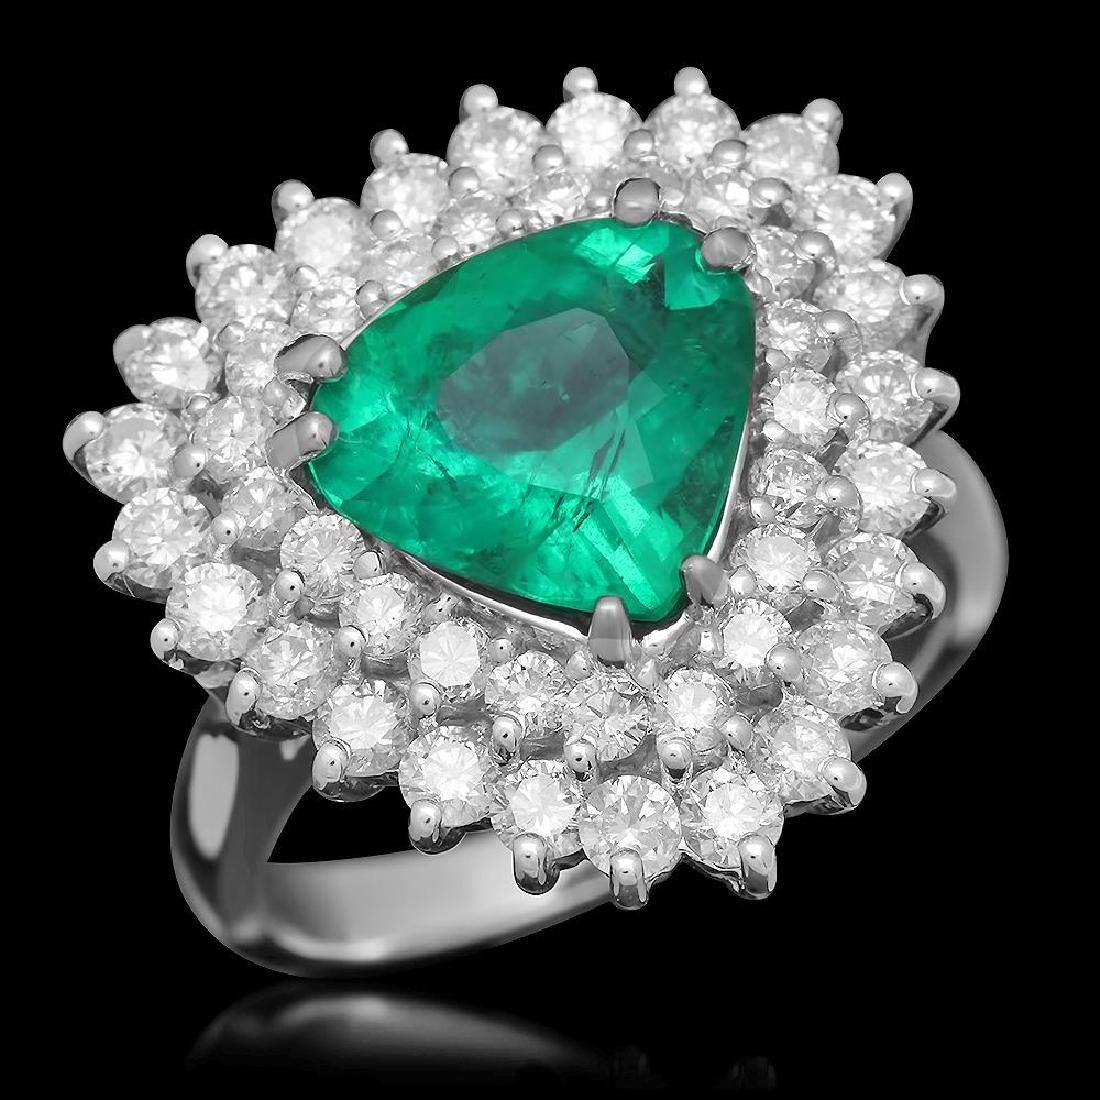 14K Gold 2.28 Emerald 1.70 Diamond Ring